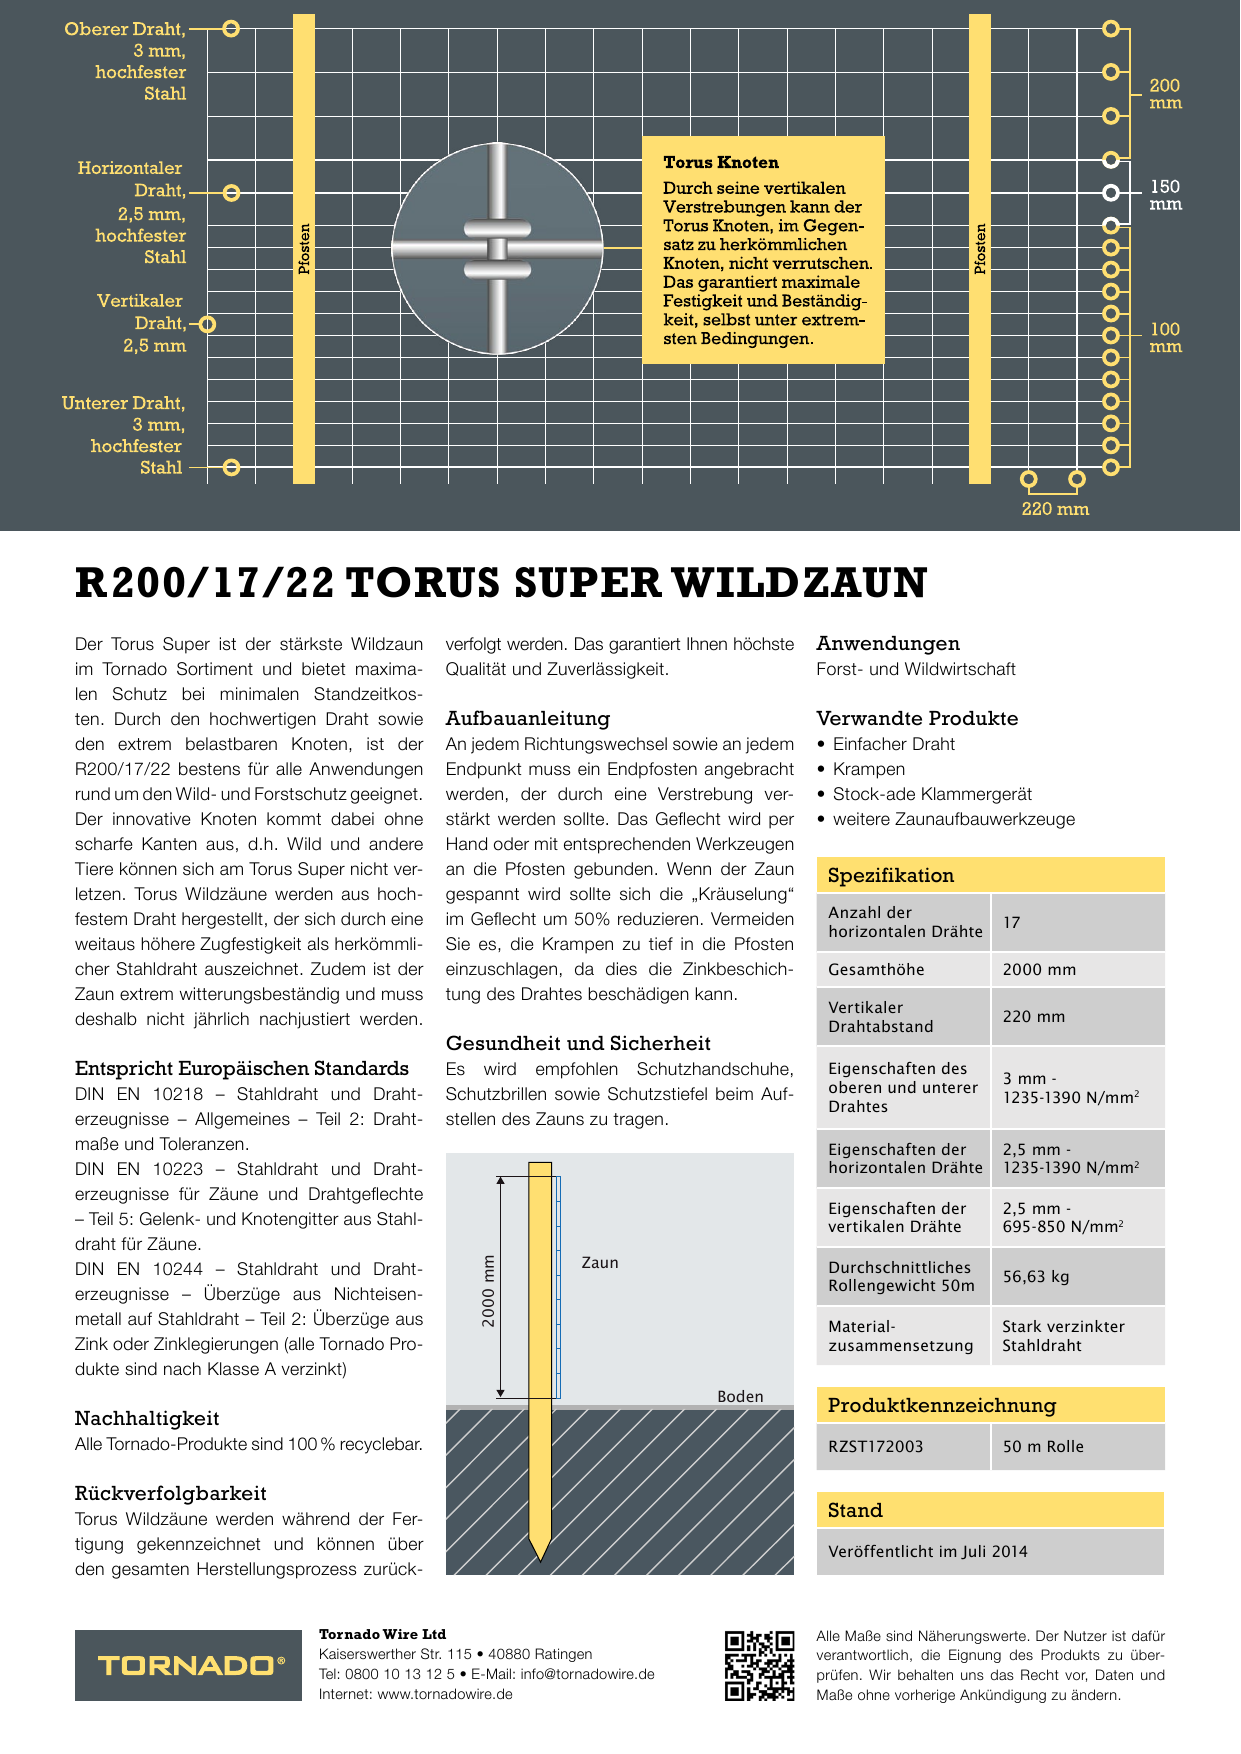 R 200/17/22 ToRus supeR WildZAuN